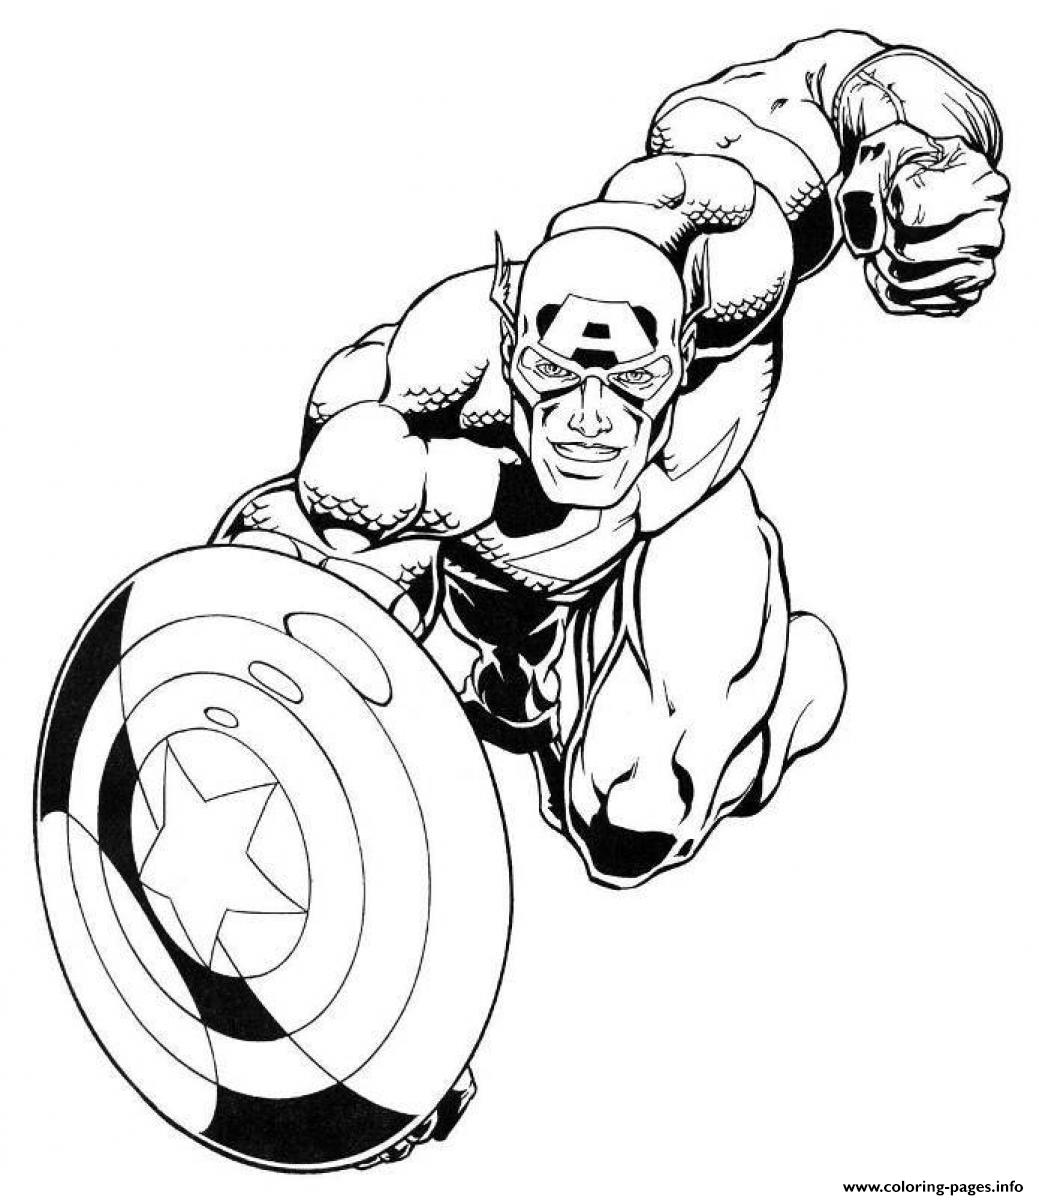 marvel captain america s for kids7b1d coloring pages printable